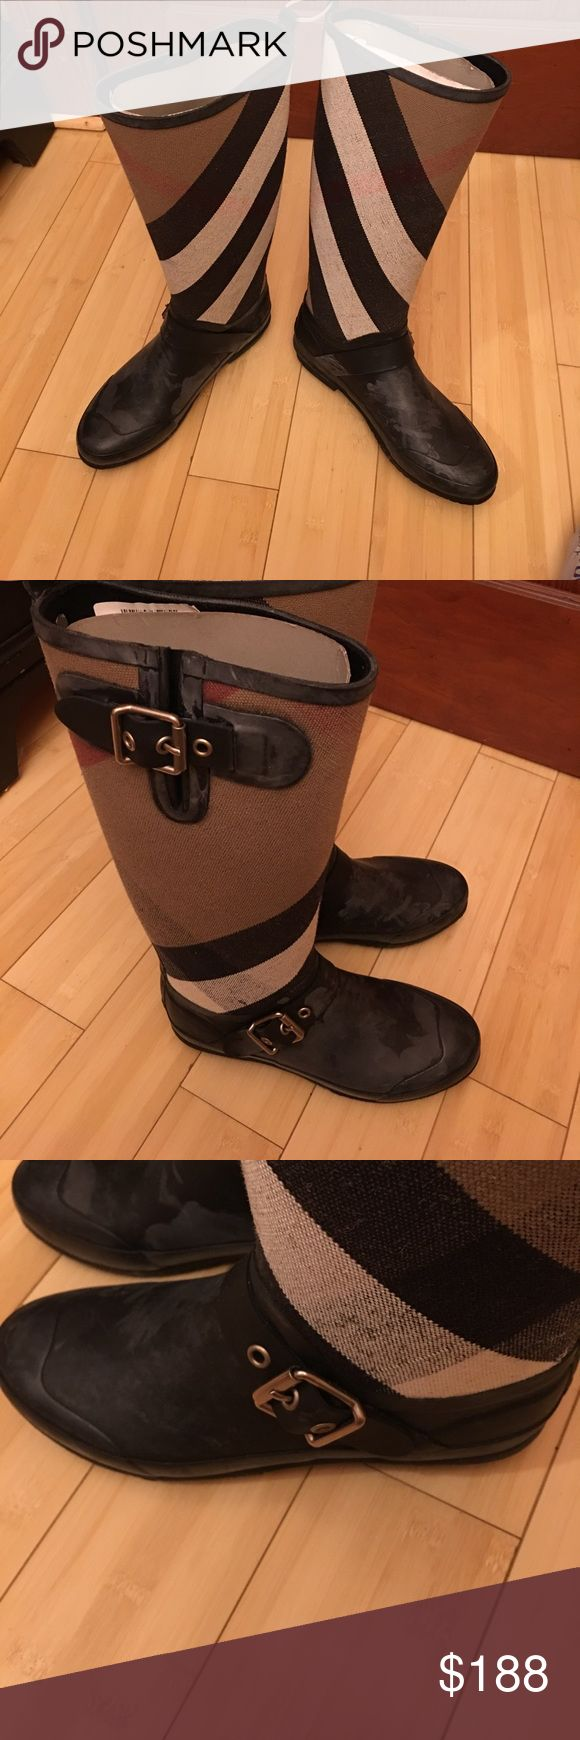 Burberry rain boots Brand new Burberry rain boots, size 8 but like size 71/2. Make me an offer it is yours.100%auth. Burberry Shoes Winter & Rain Boots